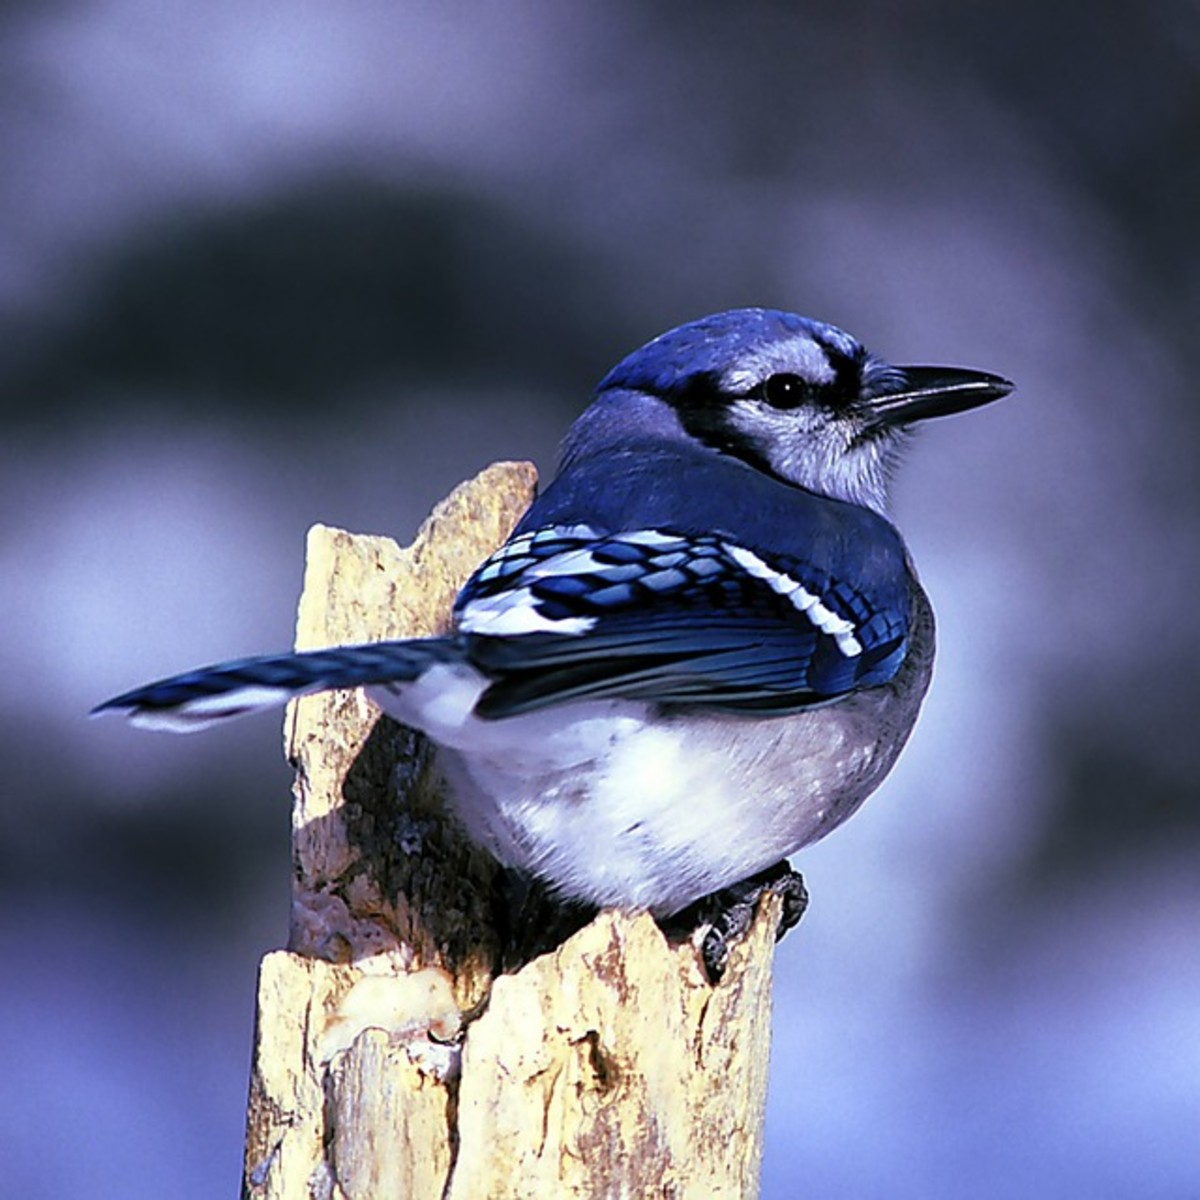 At this particular period of my life, I was going through a lot of changes. The blue jay was the spirit animal that saw me through them, challenged me, and gave me the most wonderful gift I've ever received.